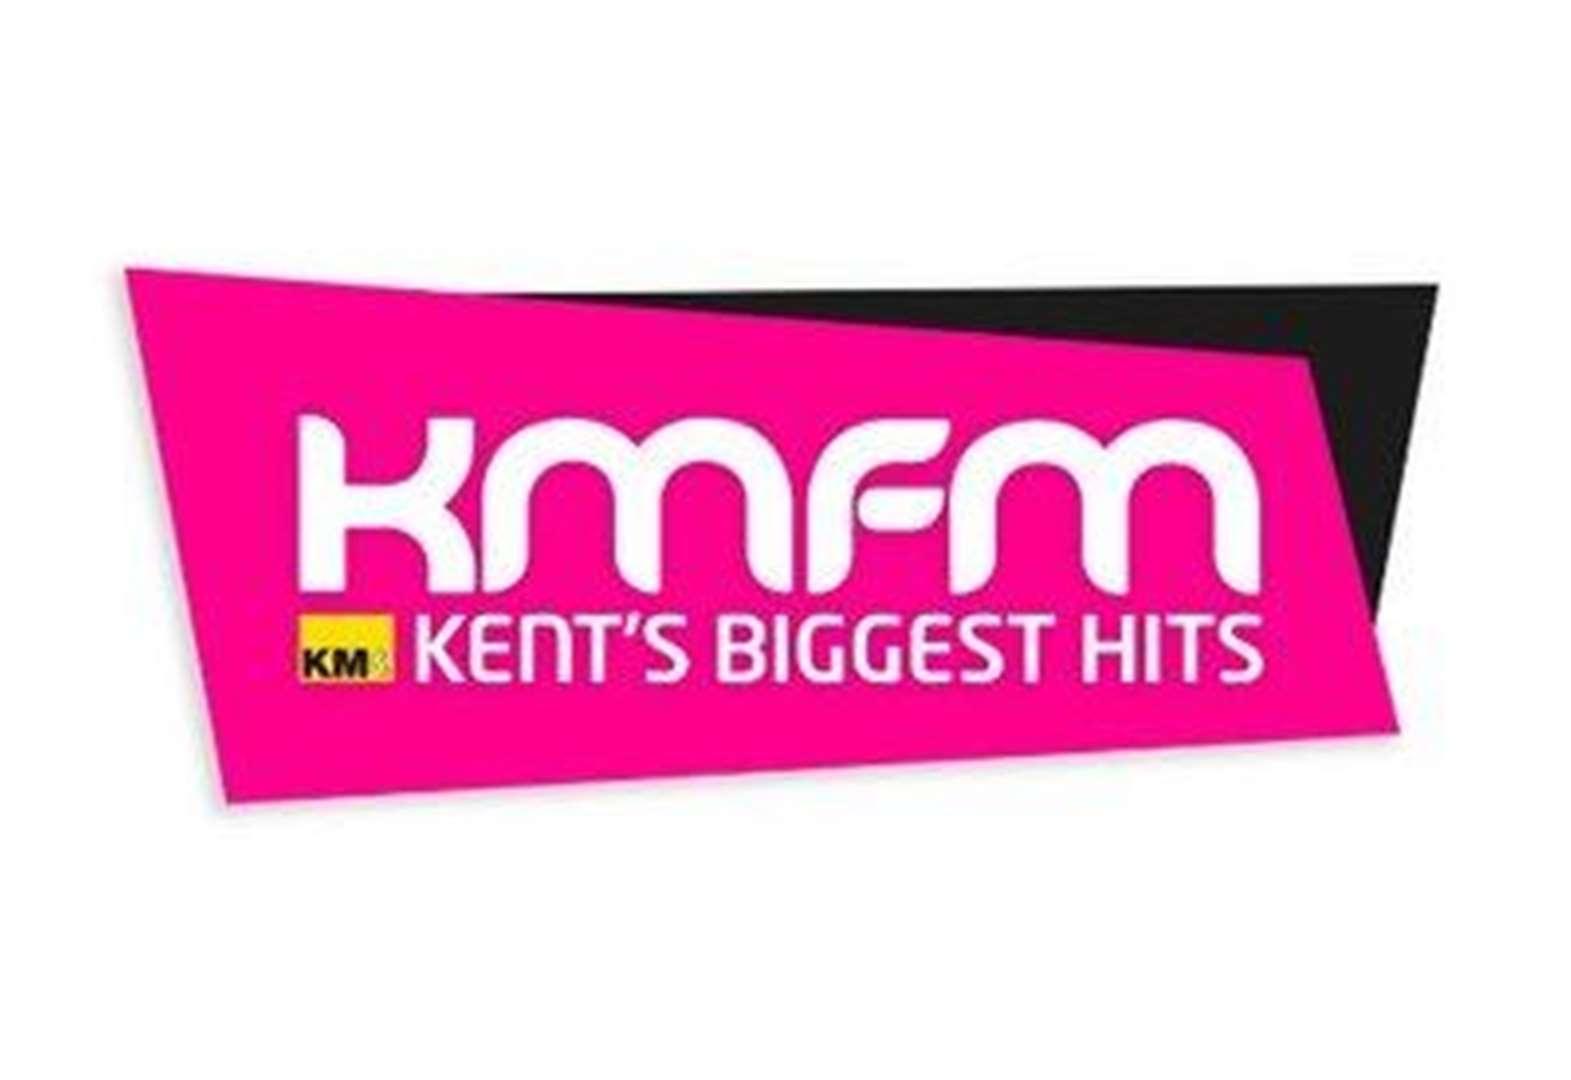 Tenerife holiday up for grabs on kmfm